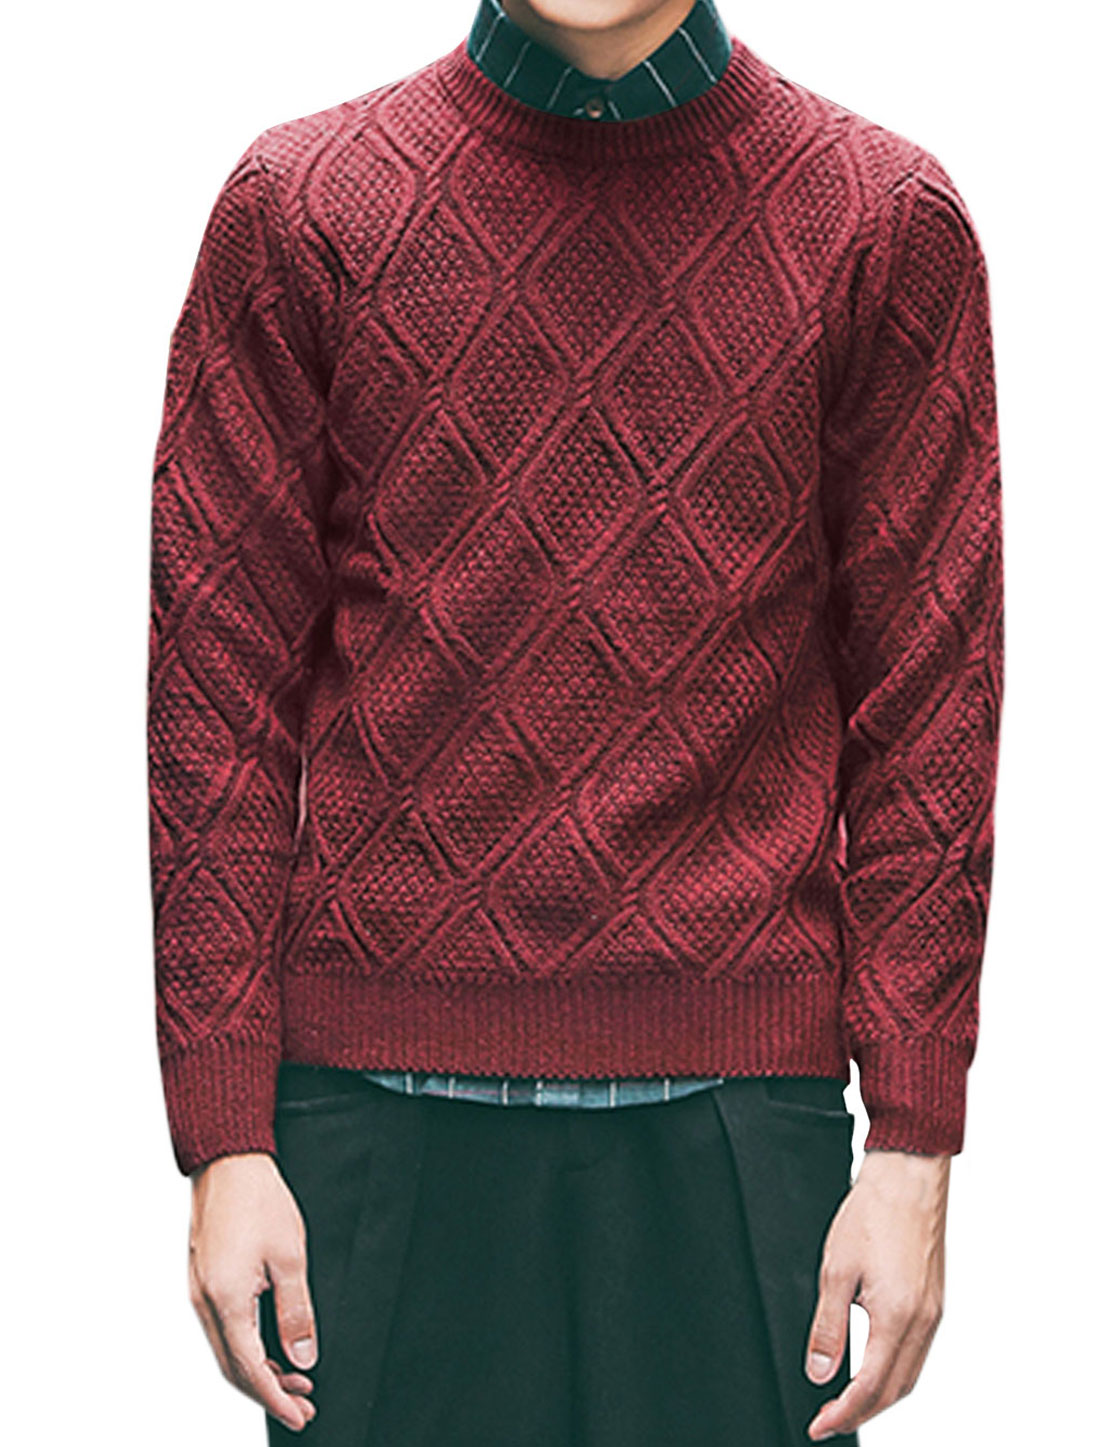 Men Pullover Long Sleeve Argyle Design Casual Sweaters Burgundy M